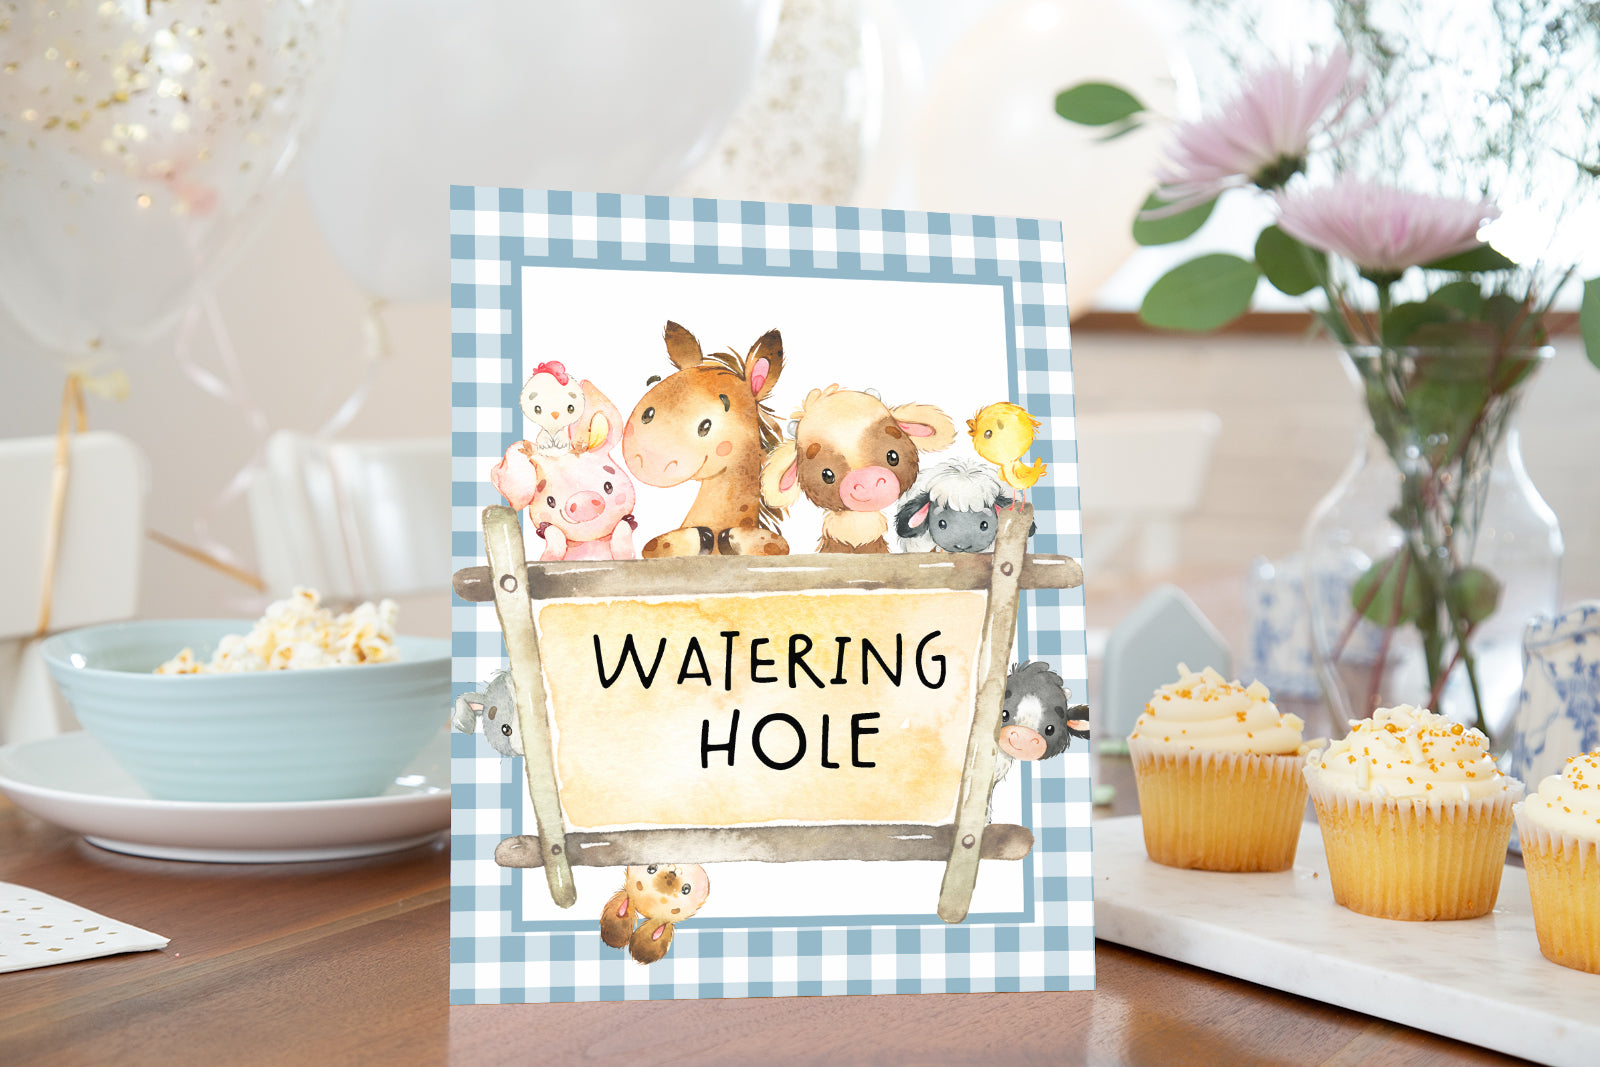 Farm Watering Hole Sign Printable | Farm Theme Baby Shower Table Decoration - 11C